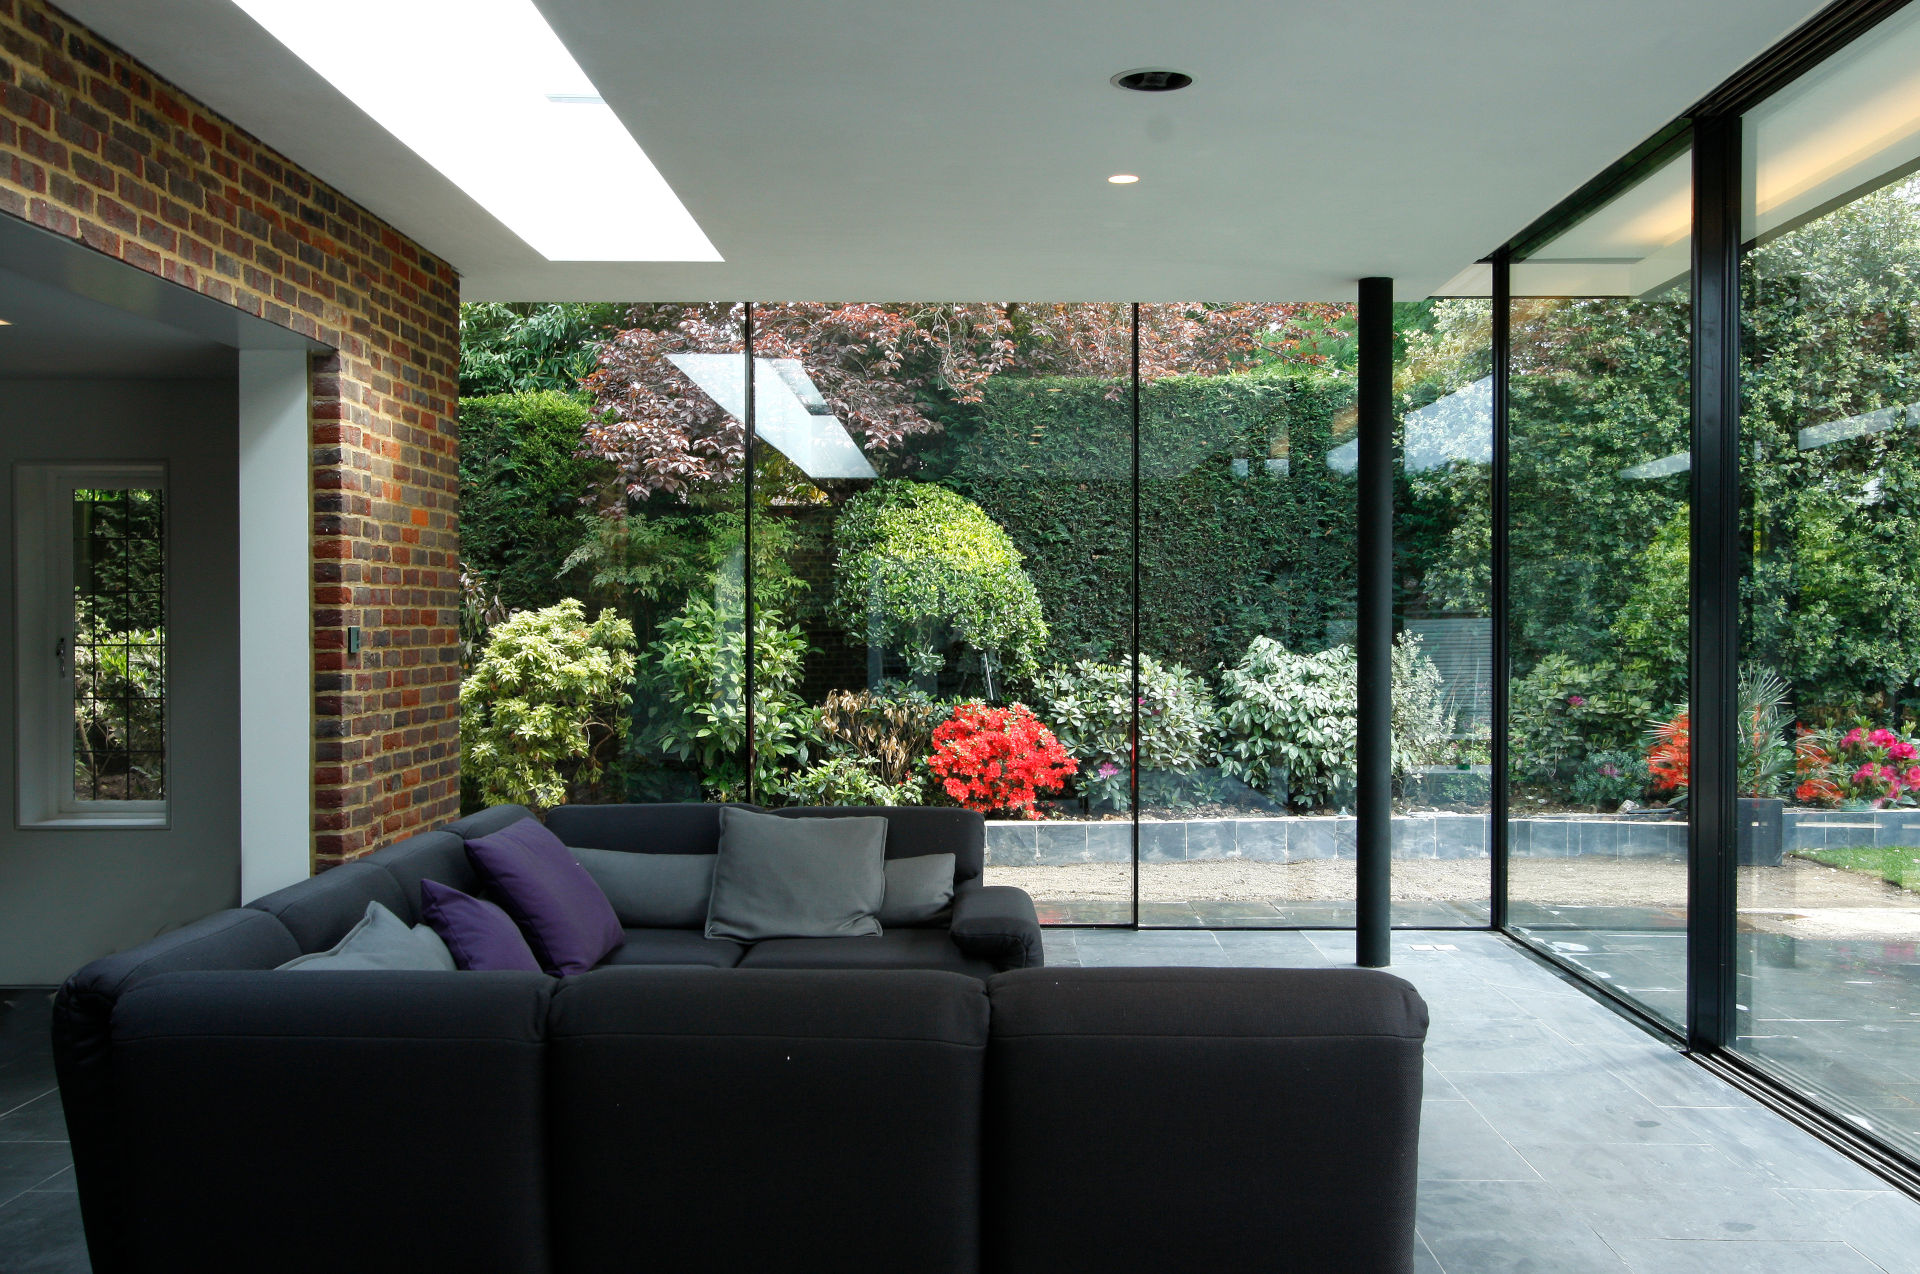 totteridge-lane-slim-framed-sliding-glass-doors